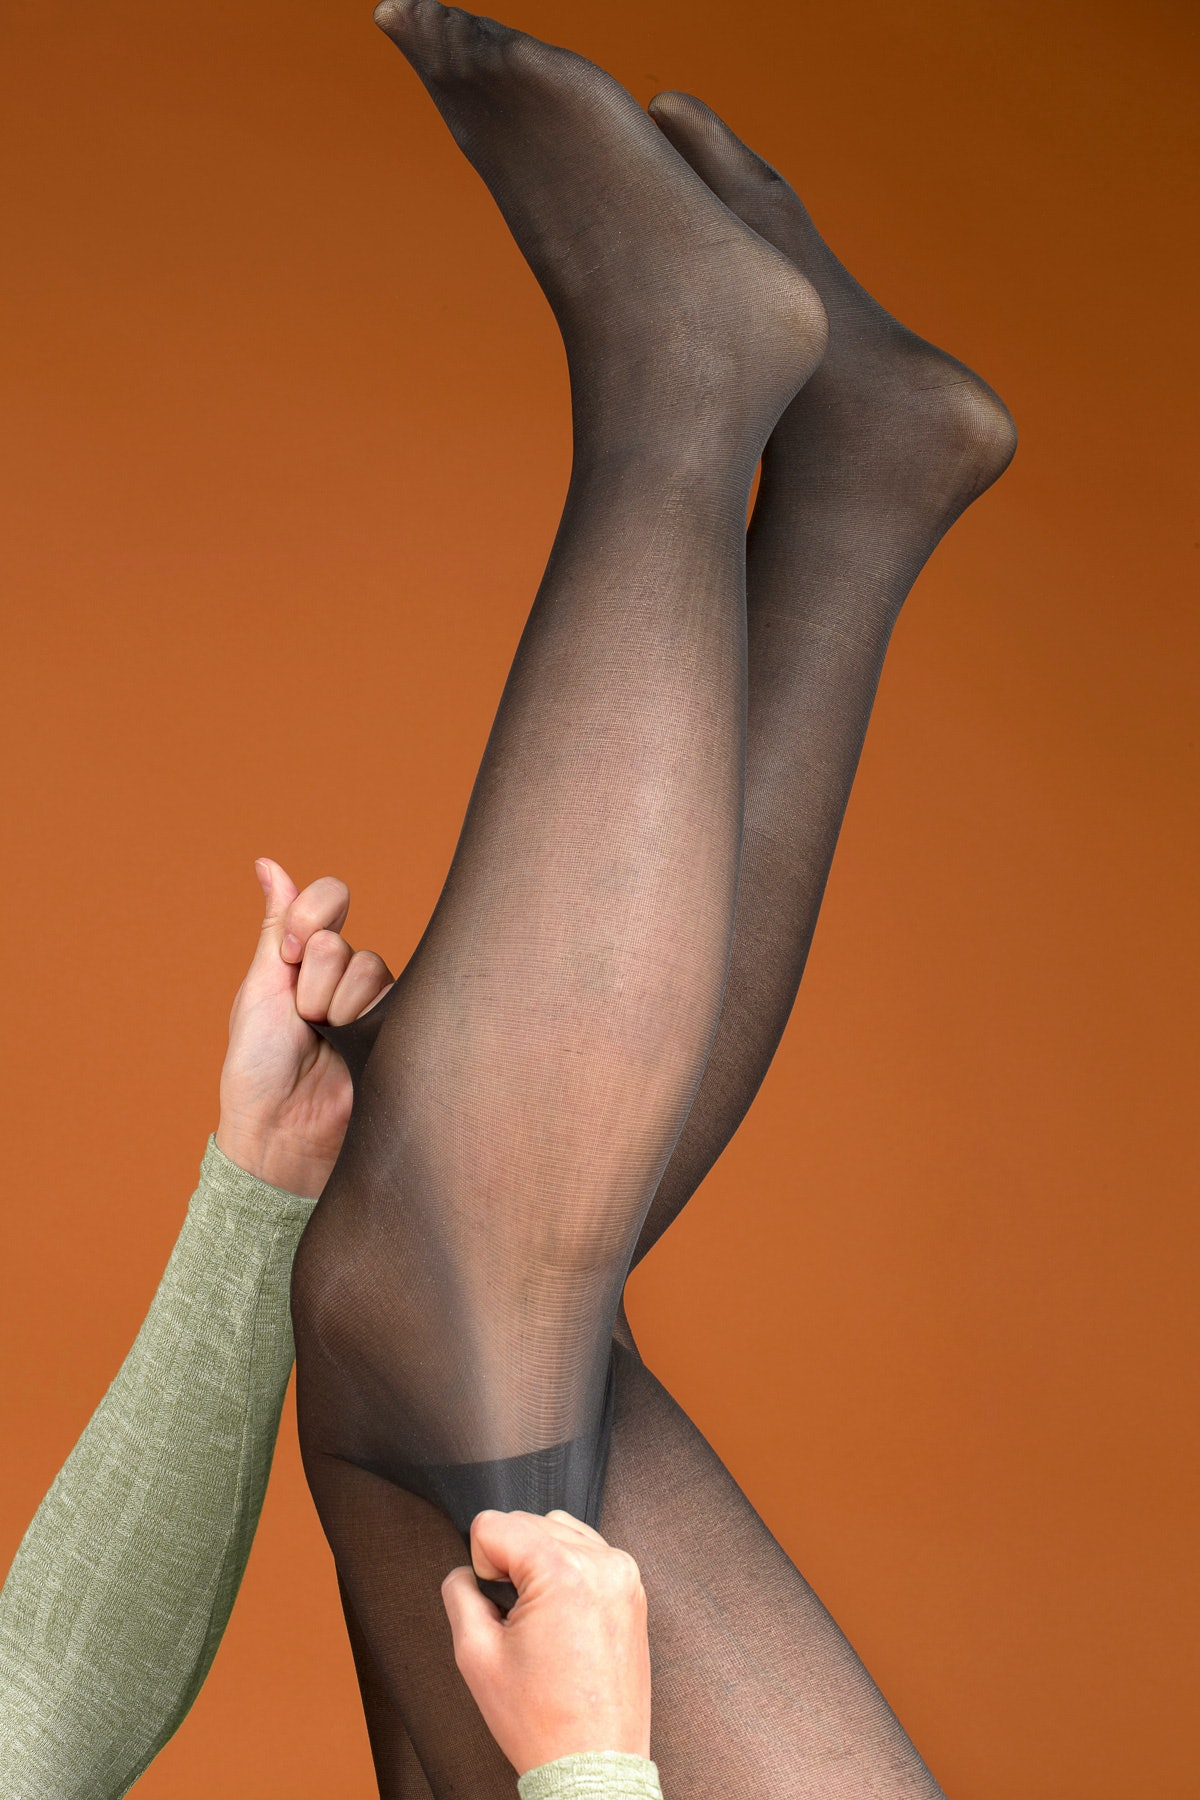 Schwarz pantyhose experience stories jenner all